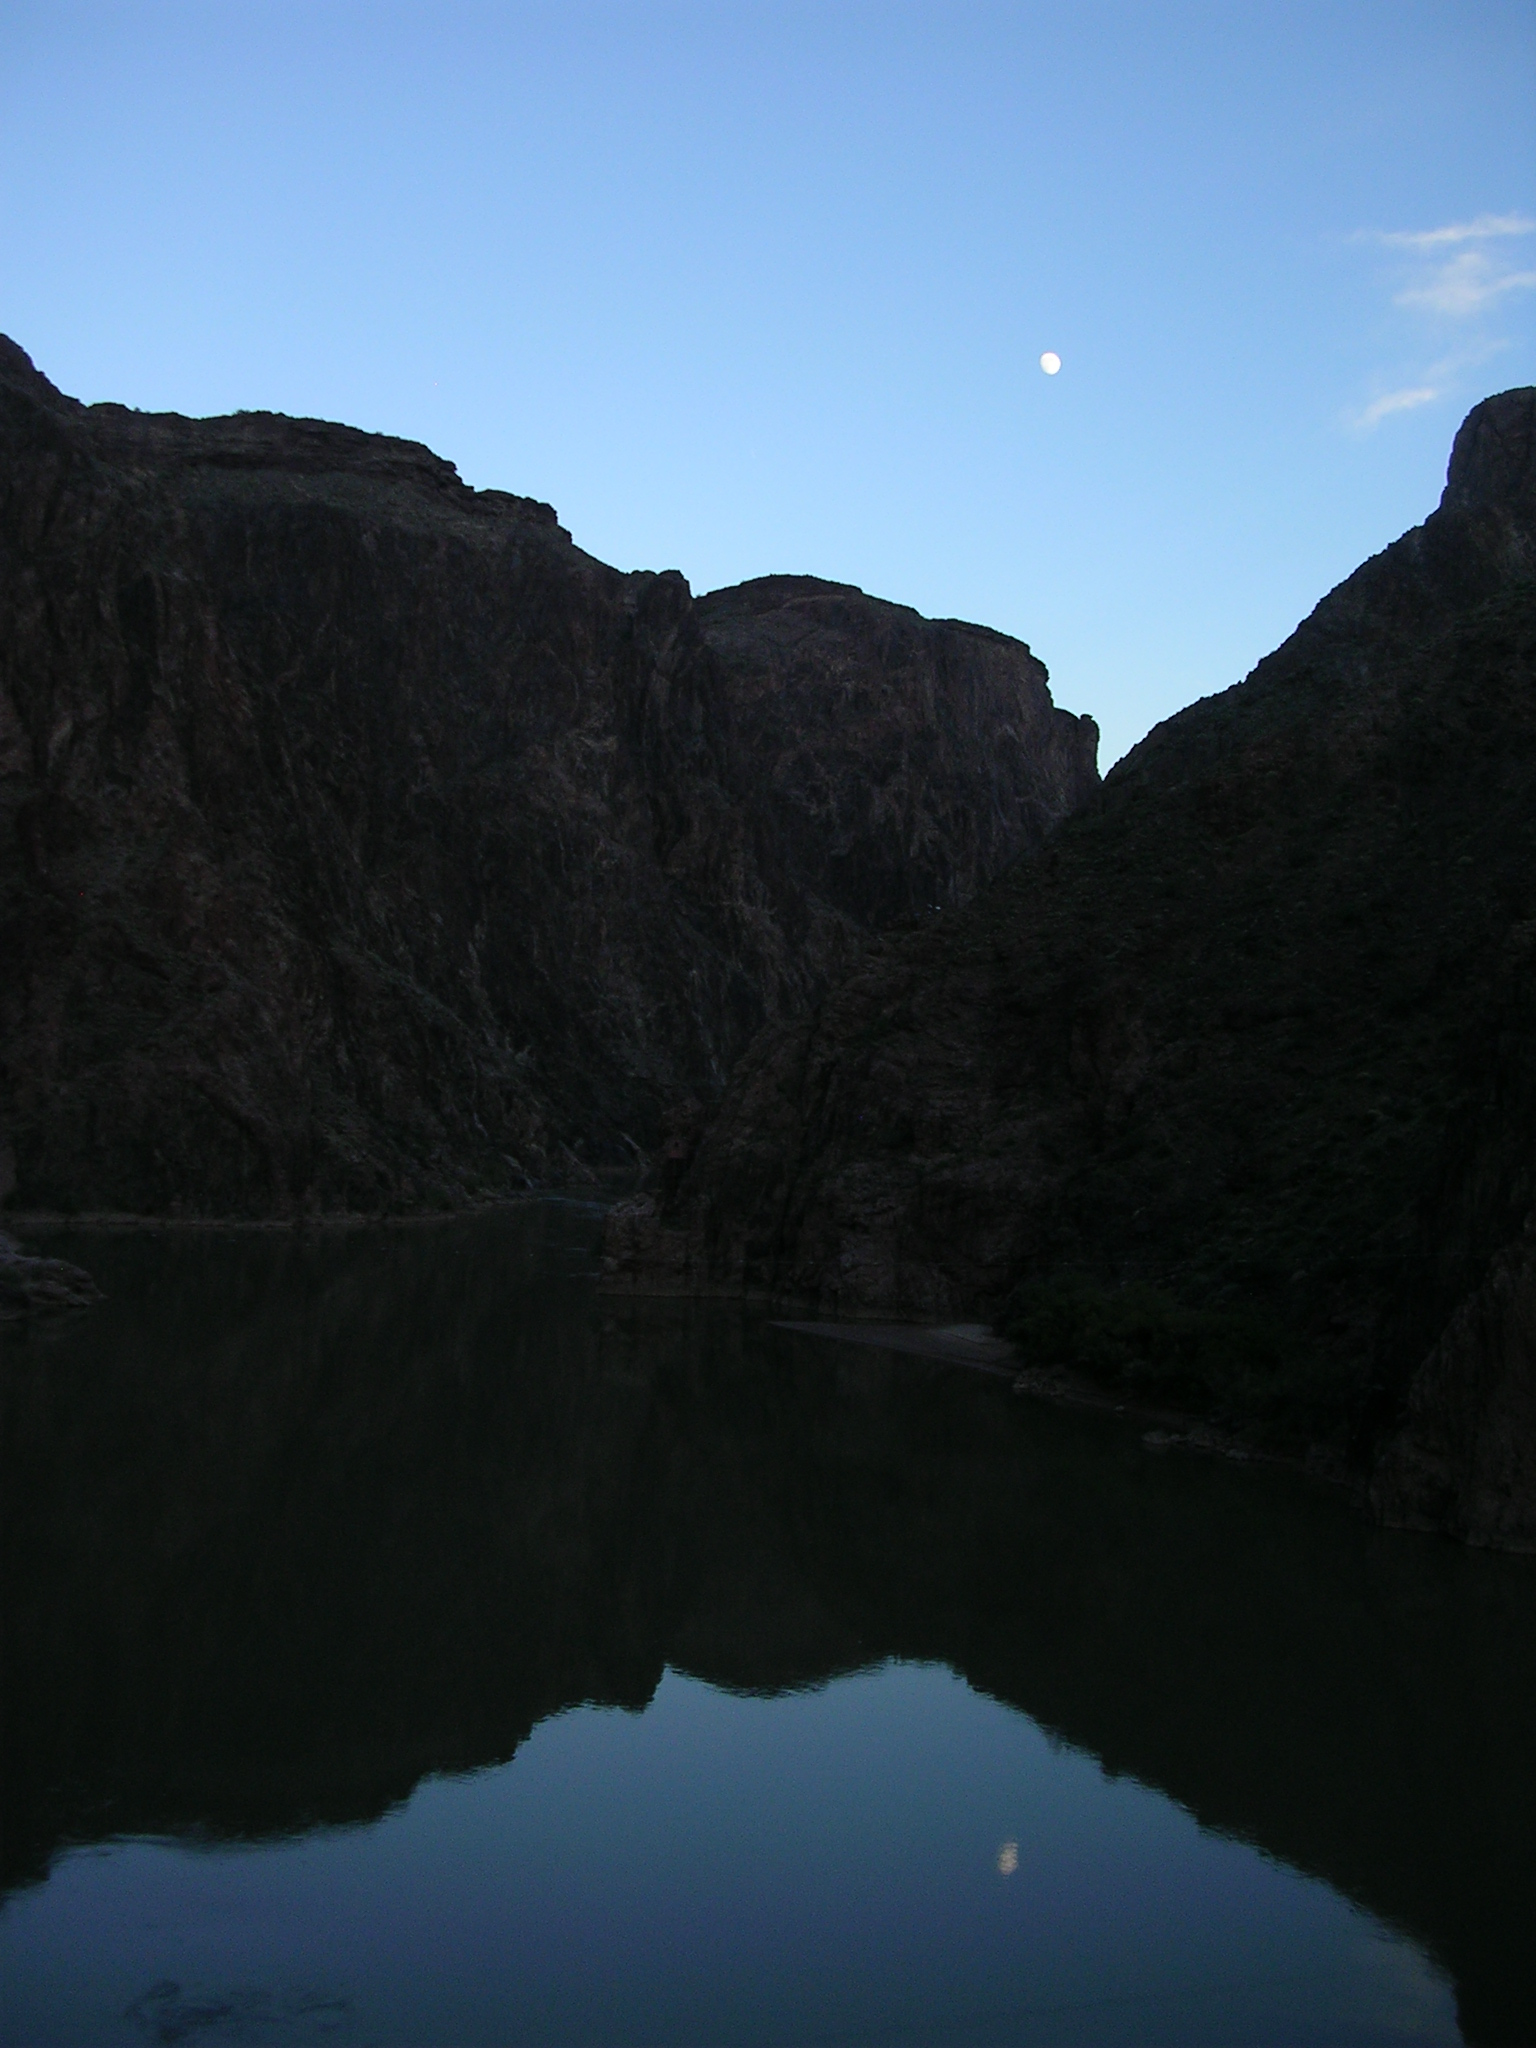 Moonrise on the Colorado